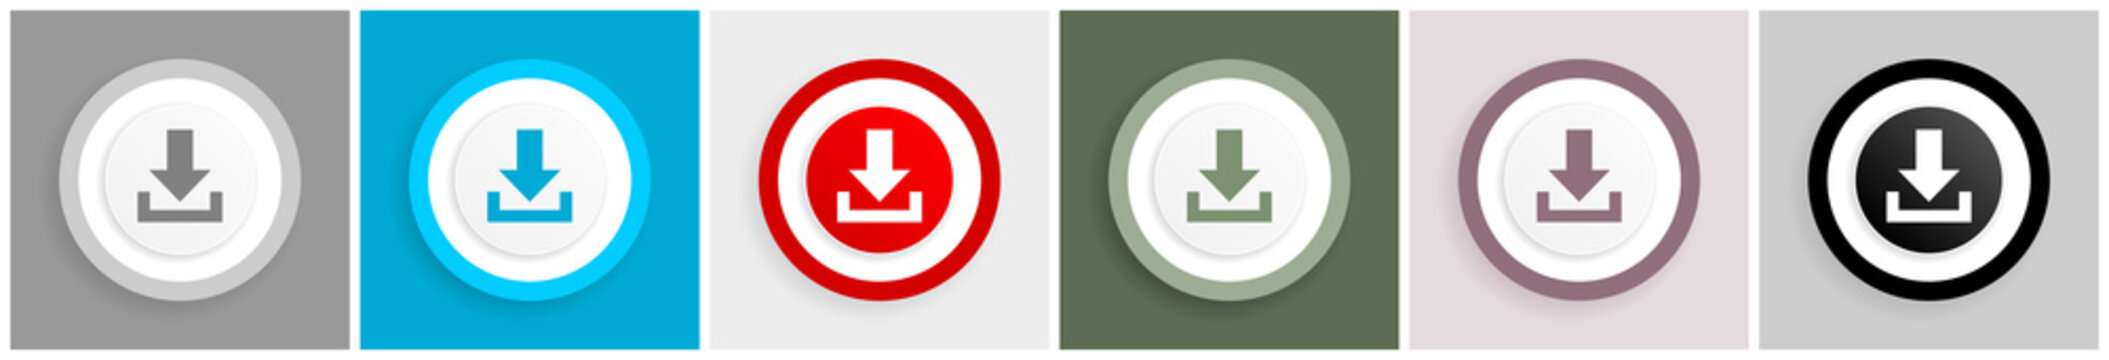 Download icon set, vector illustrations in 6 options for web design and mobile applications